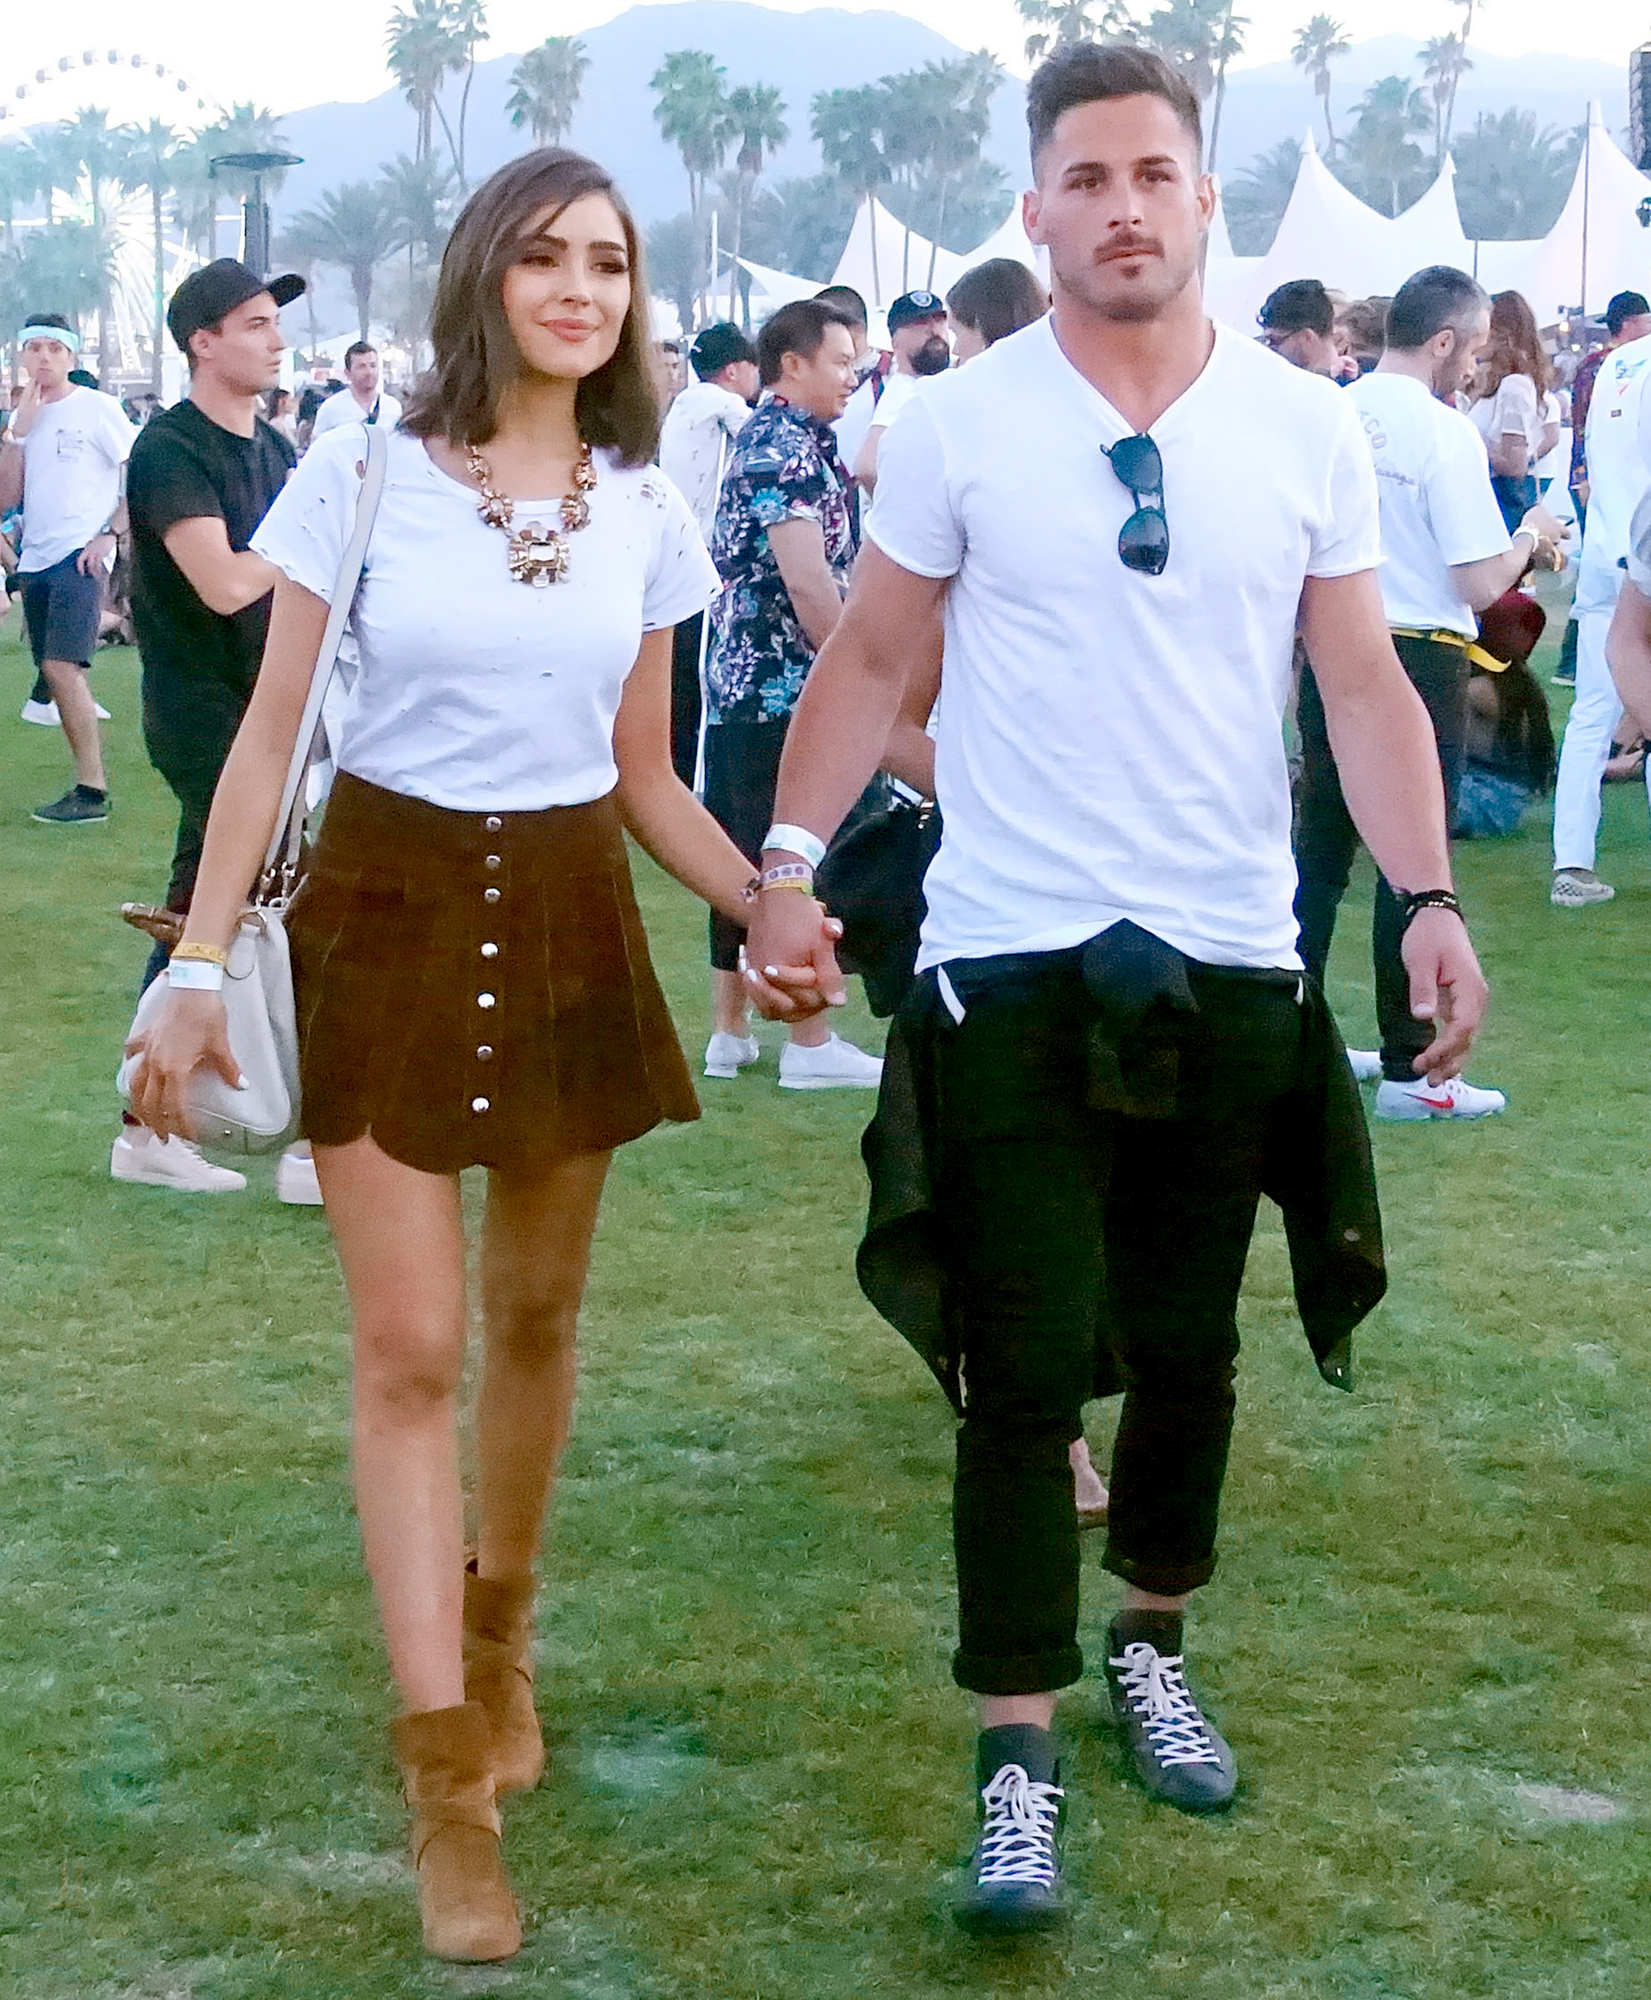 Olivia-Culpo-and-Danny-Amendola-Coachella - The model and the NFL player held hands while walking through the crowd in 2017.